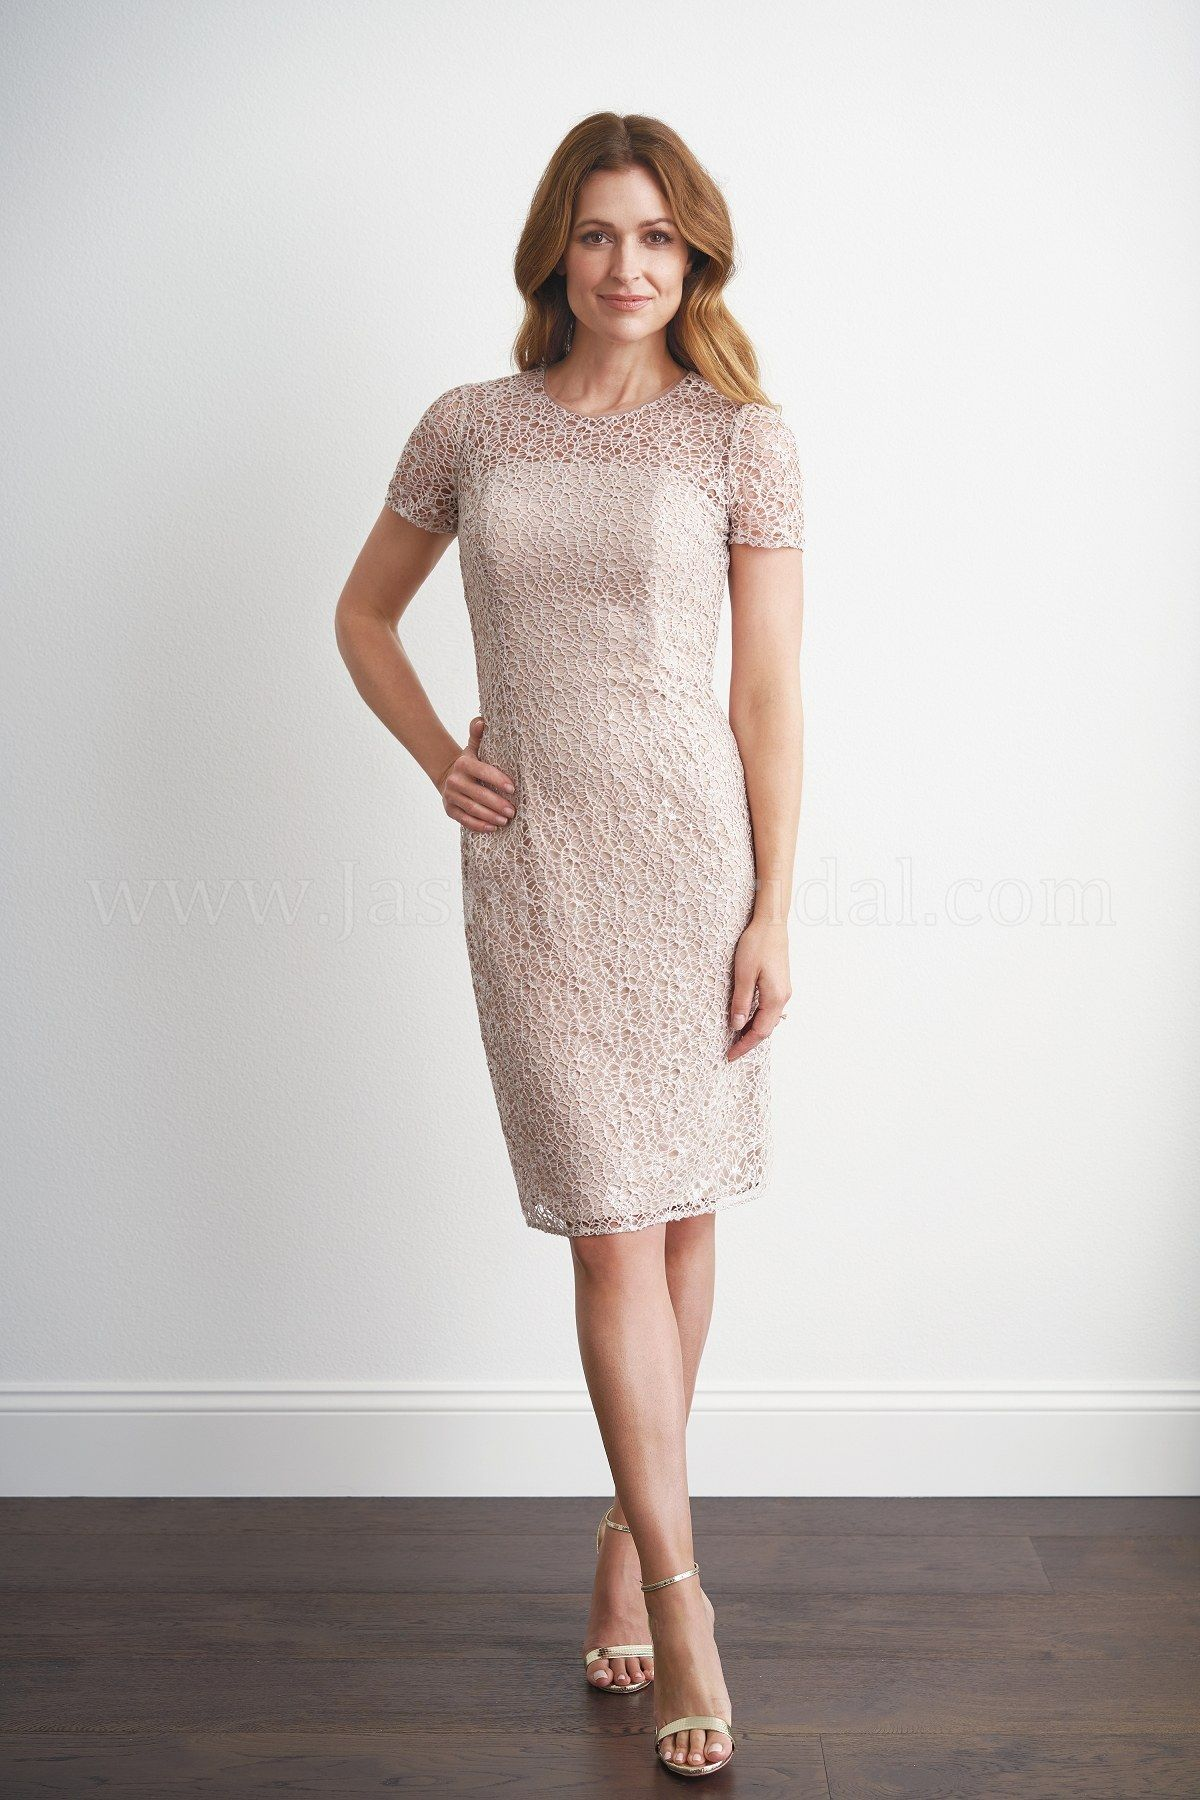 Casual mother of the groom dresses for outdoor wedding  M Knee Length Jewel Neckline Grace Sequin Lace with Stretch